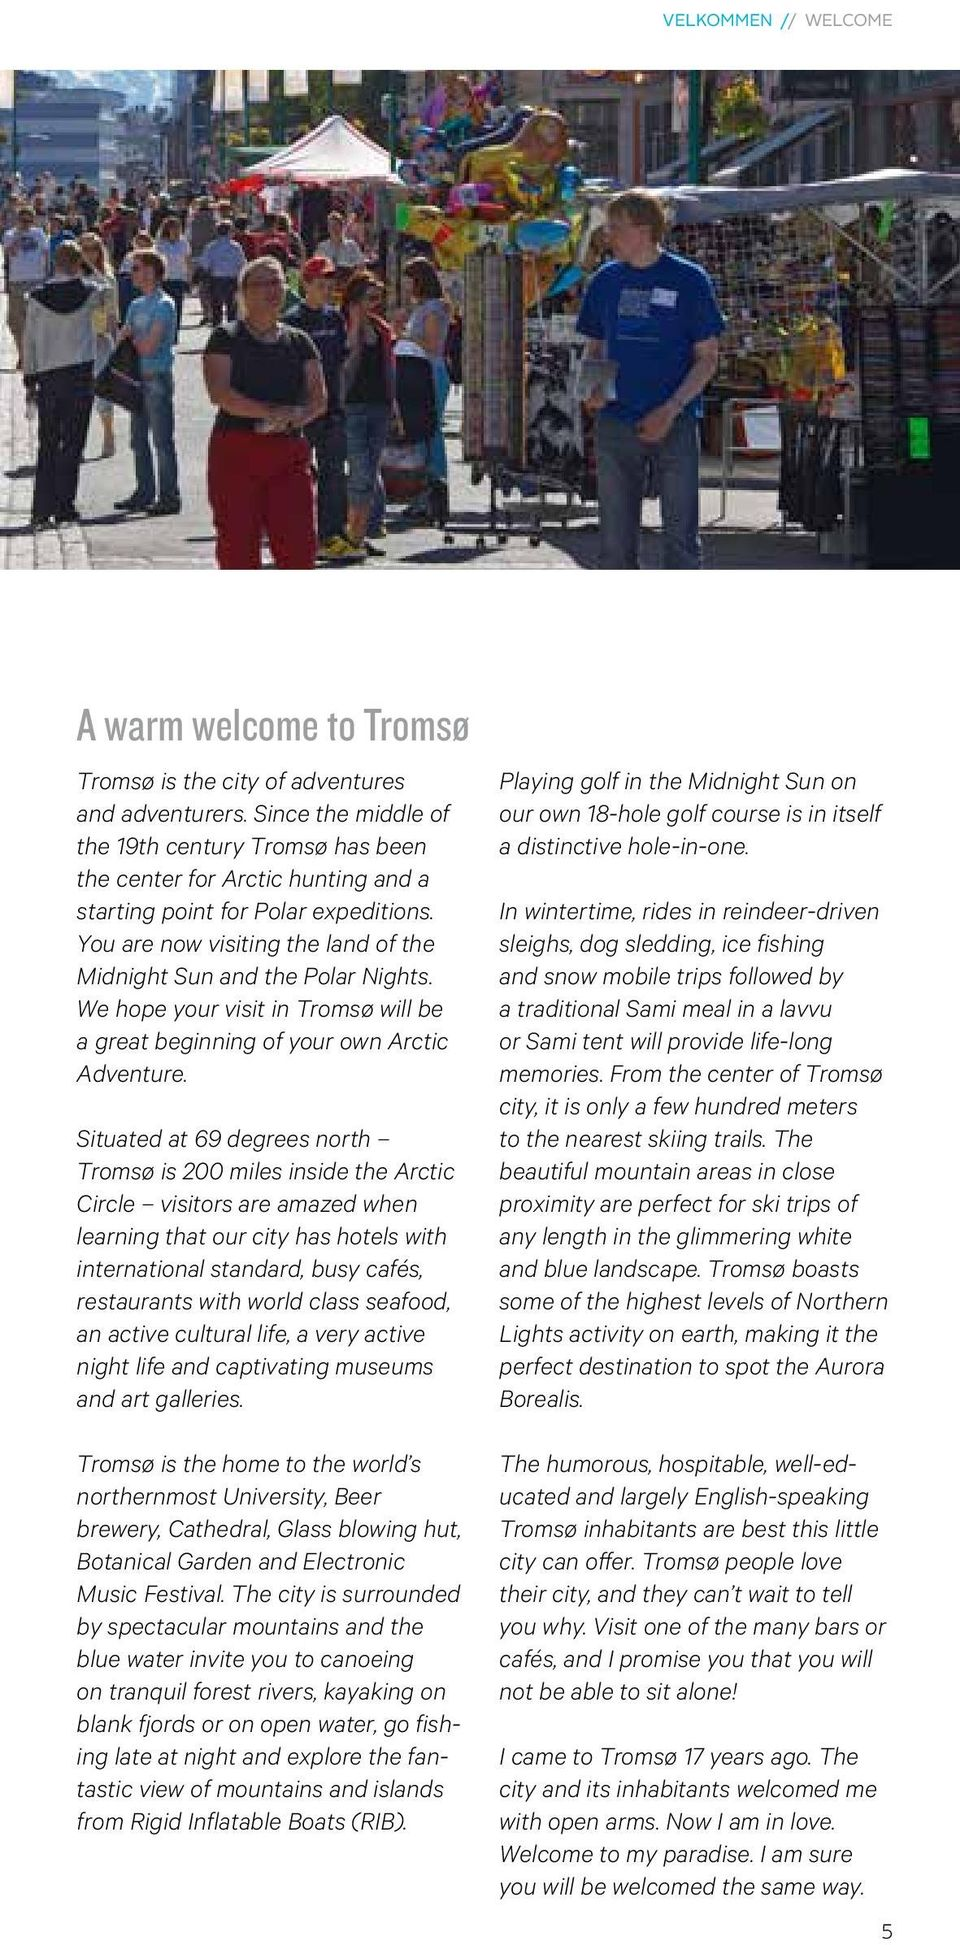 We hope your visit in Tromsø will be a great beginning of your own Arctic Adventure.